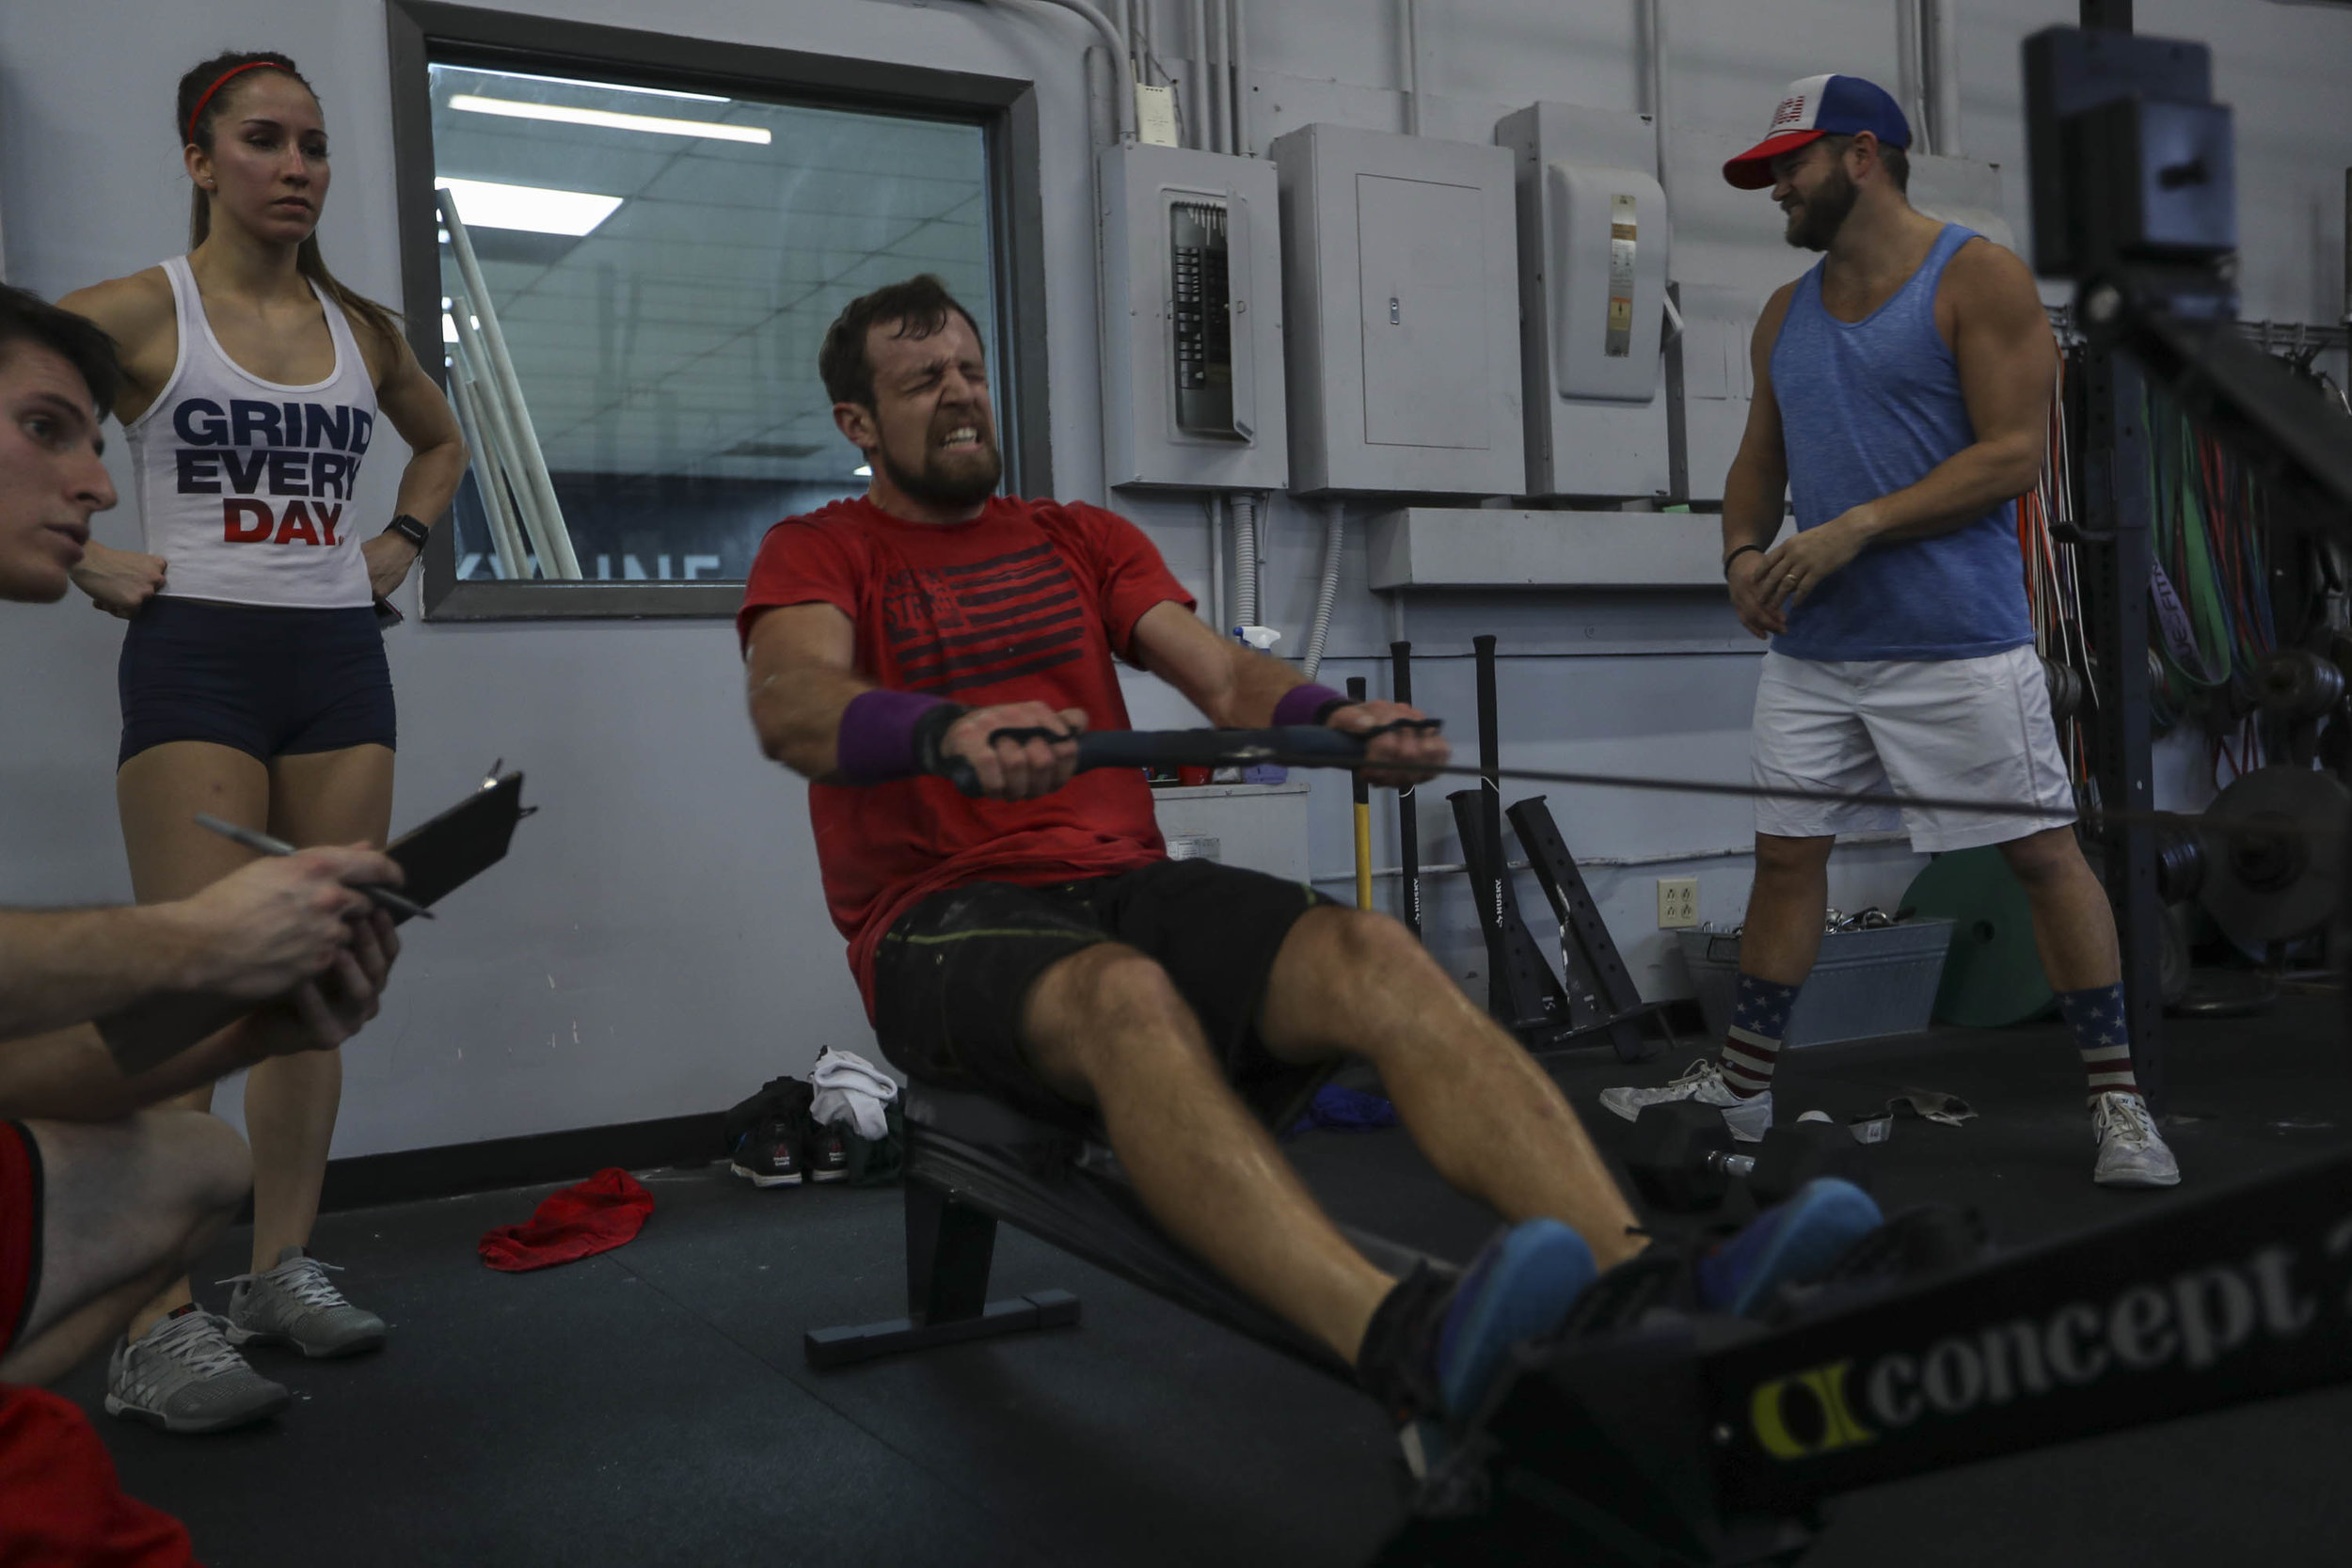 Dave throughly enjoying the Concept 2 rower.